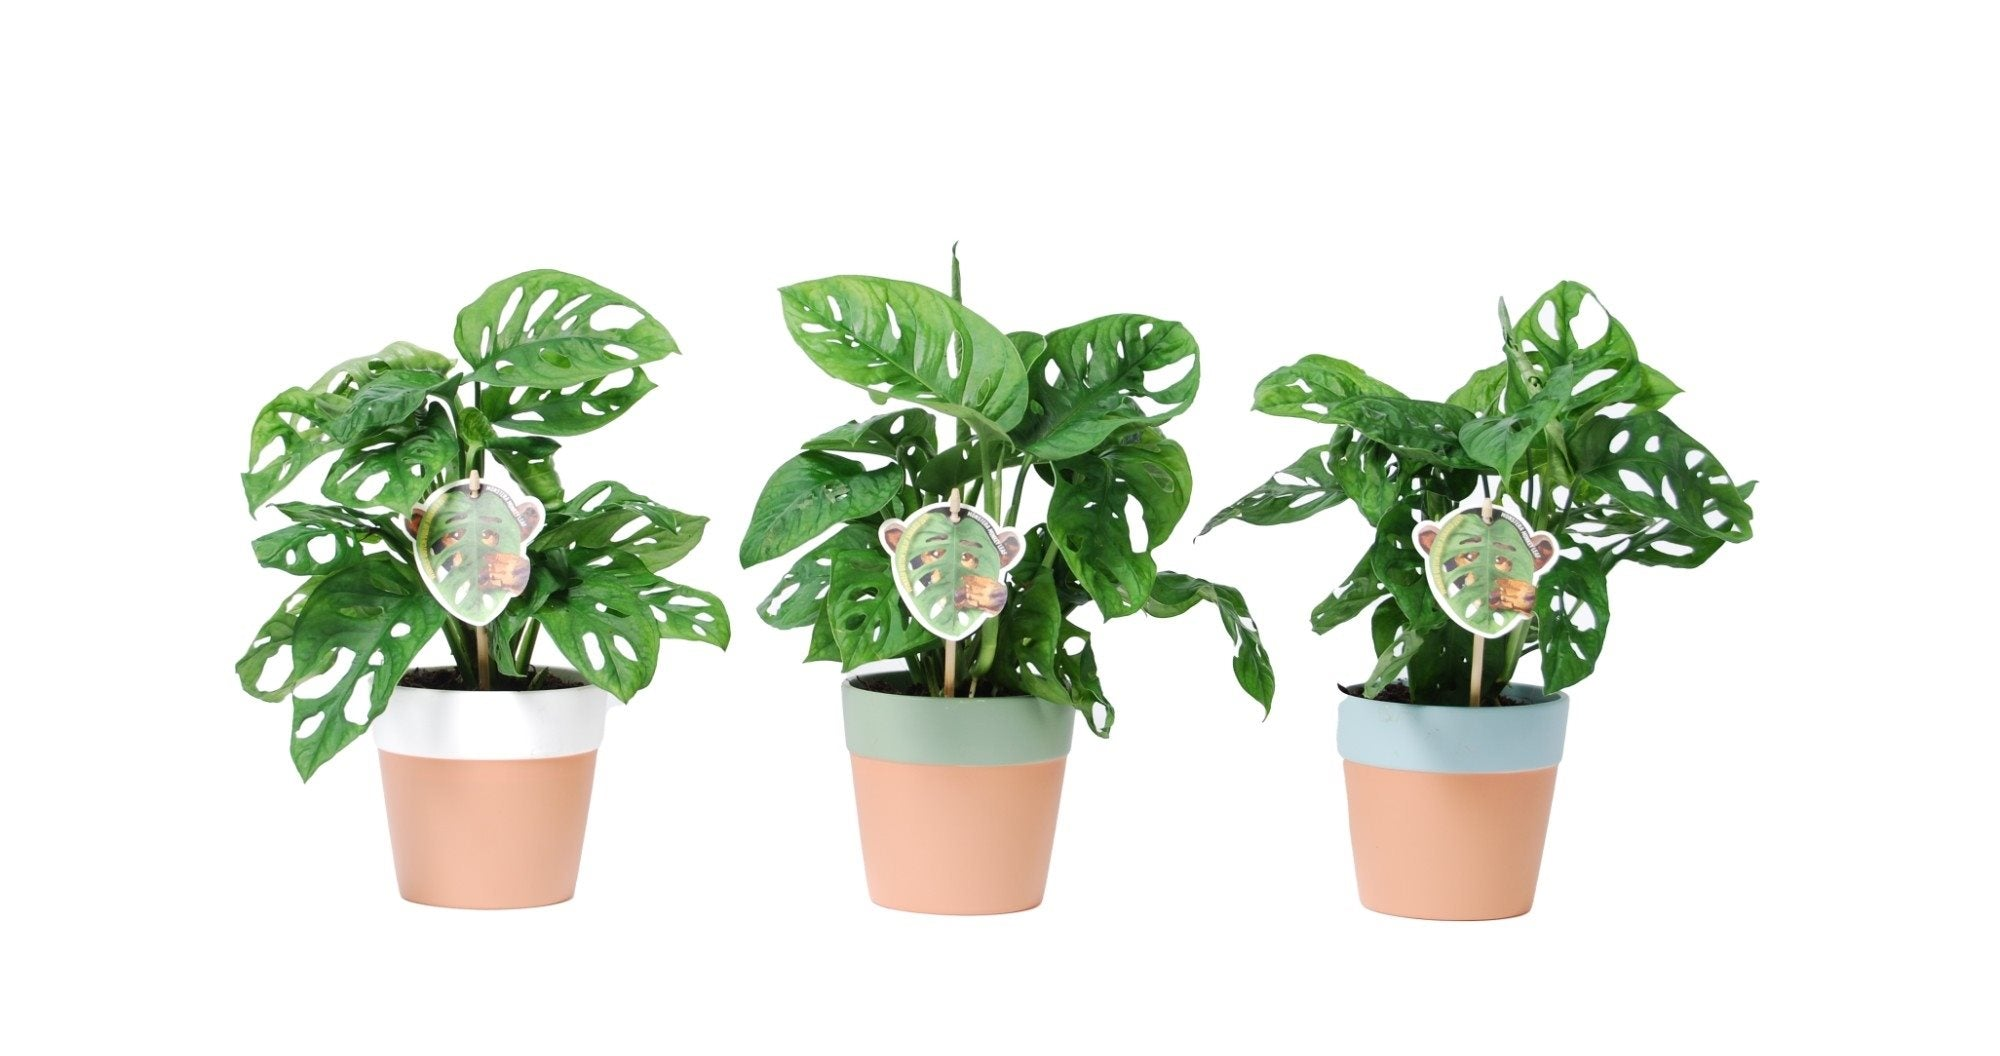 Trio Monstera Monkey Leaf in Romy keramiek - Hoogte 25 - Diameter pot 12